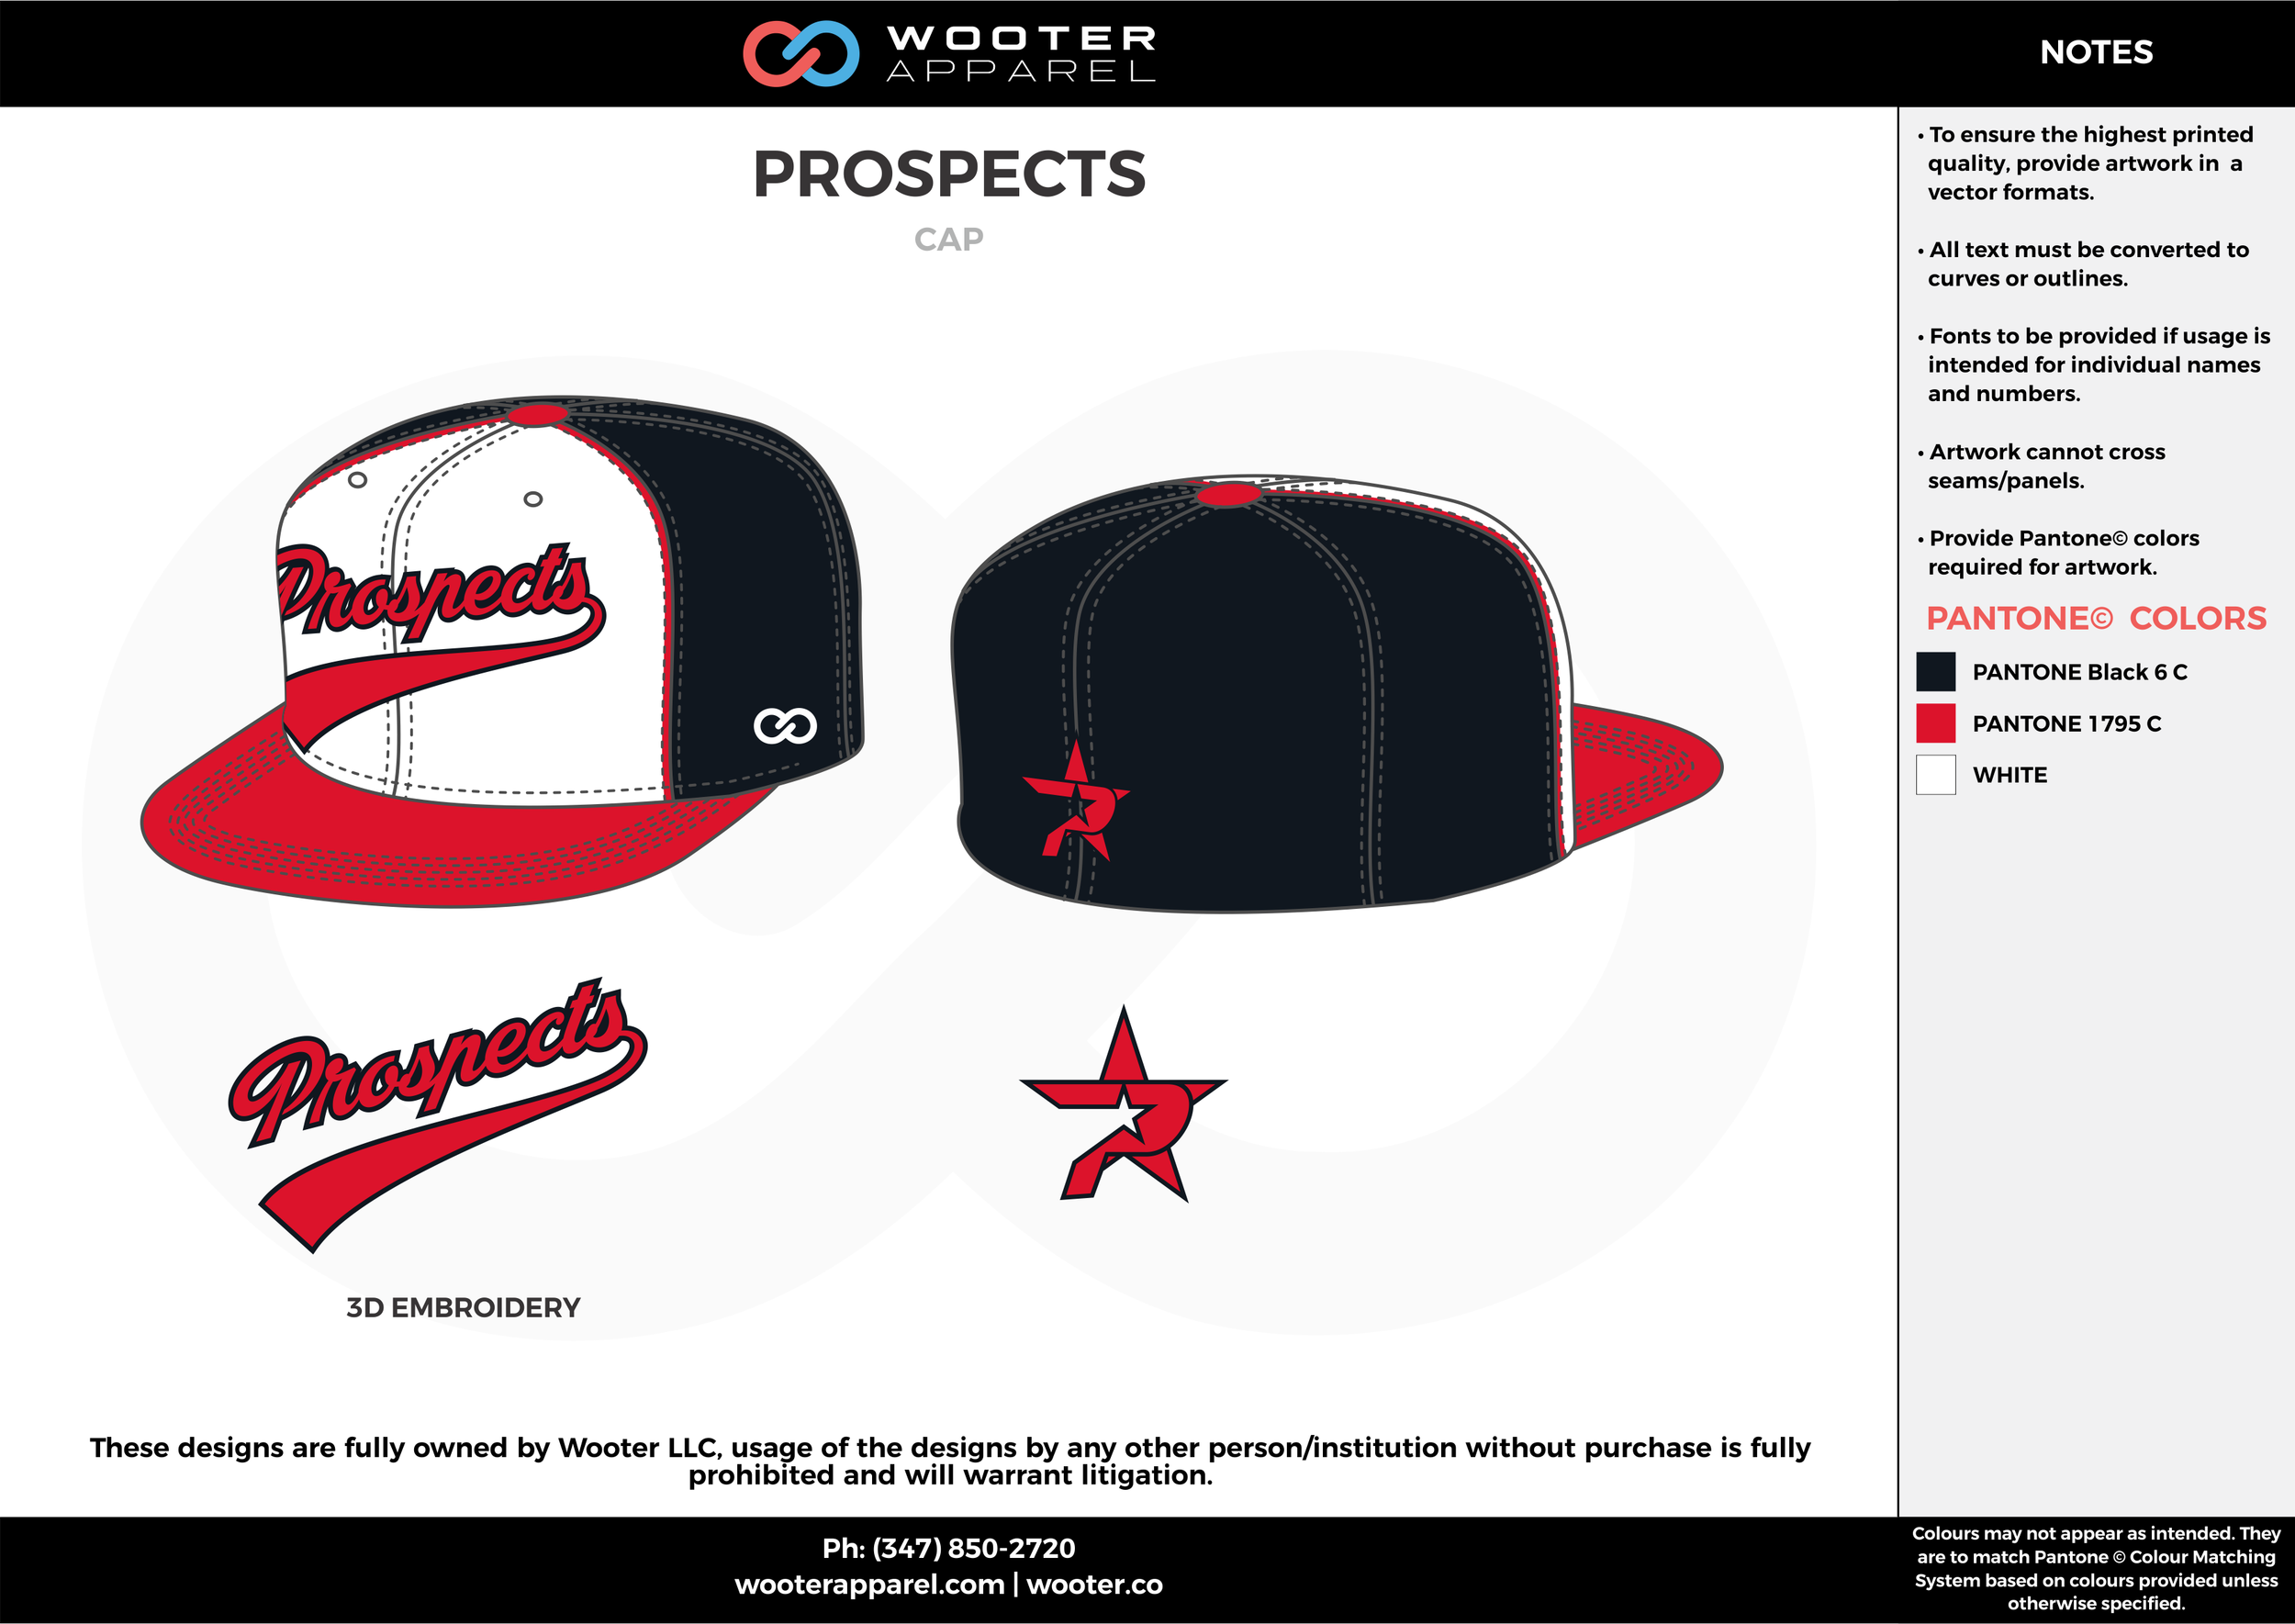 PROSPECTS black red white baseball uniforms caps